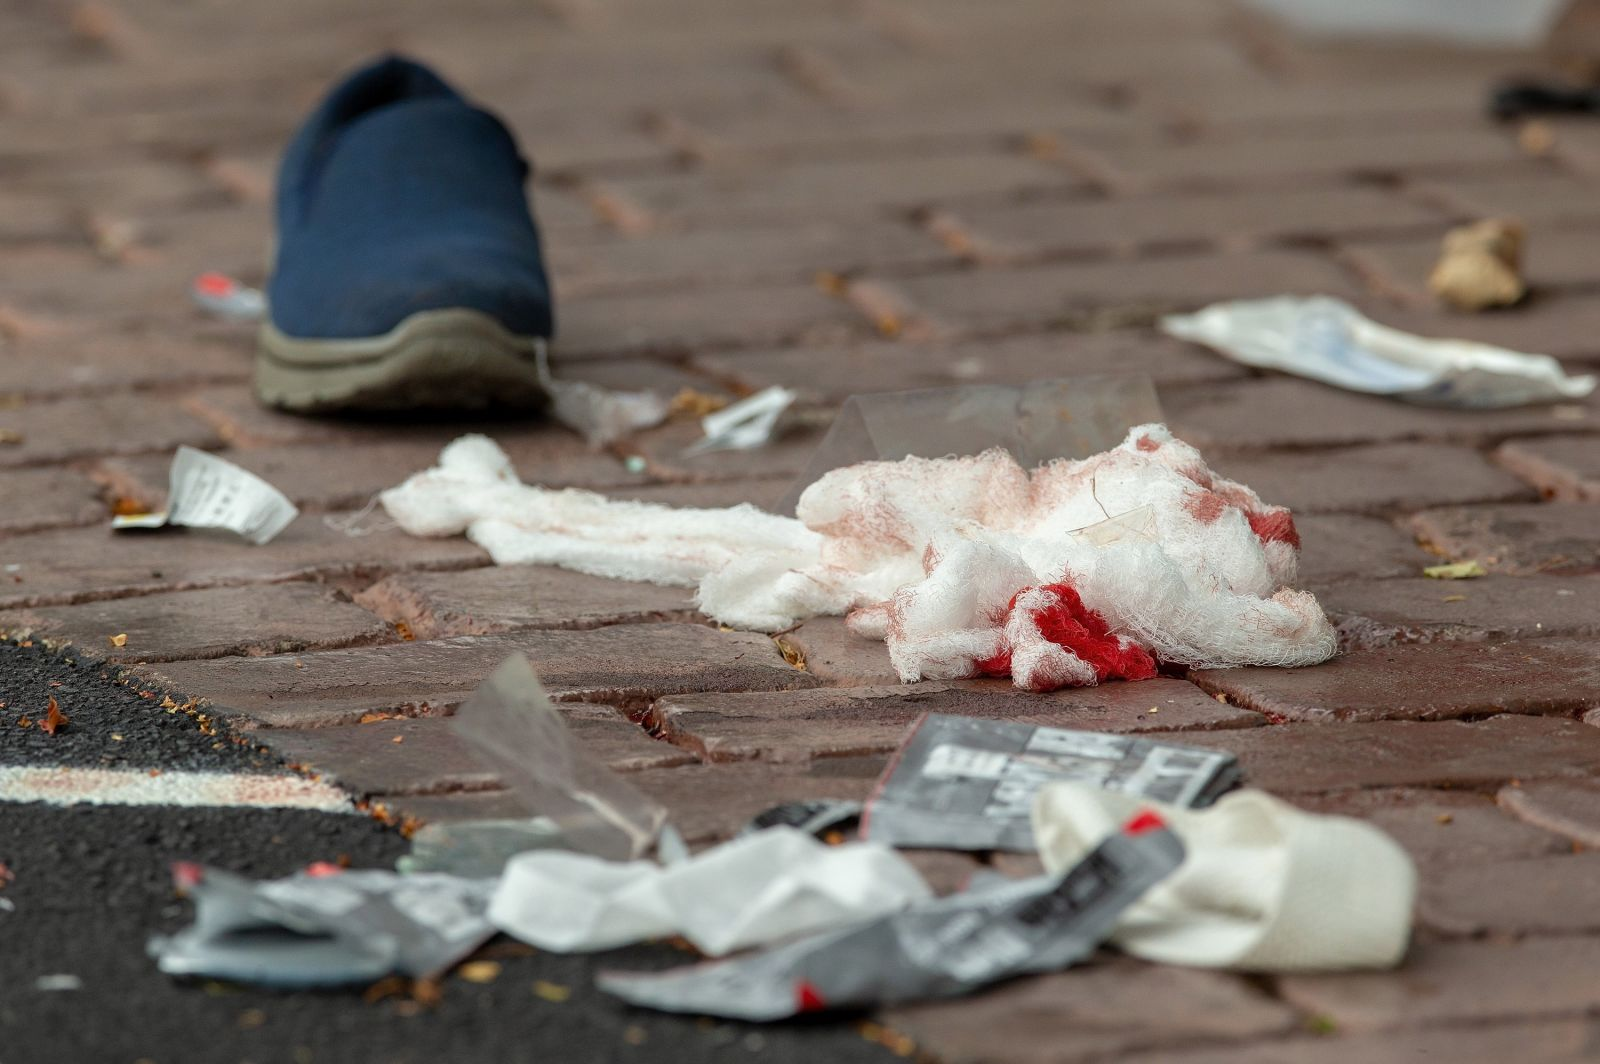 Bloodied bandages litter the road on Deans Avenue.Martin Hunter/EPA